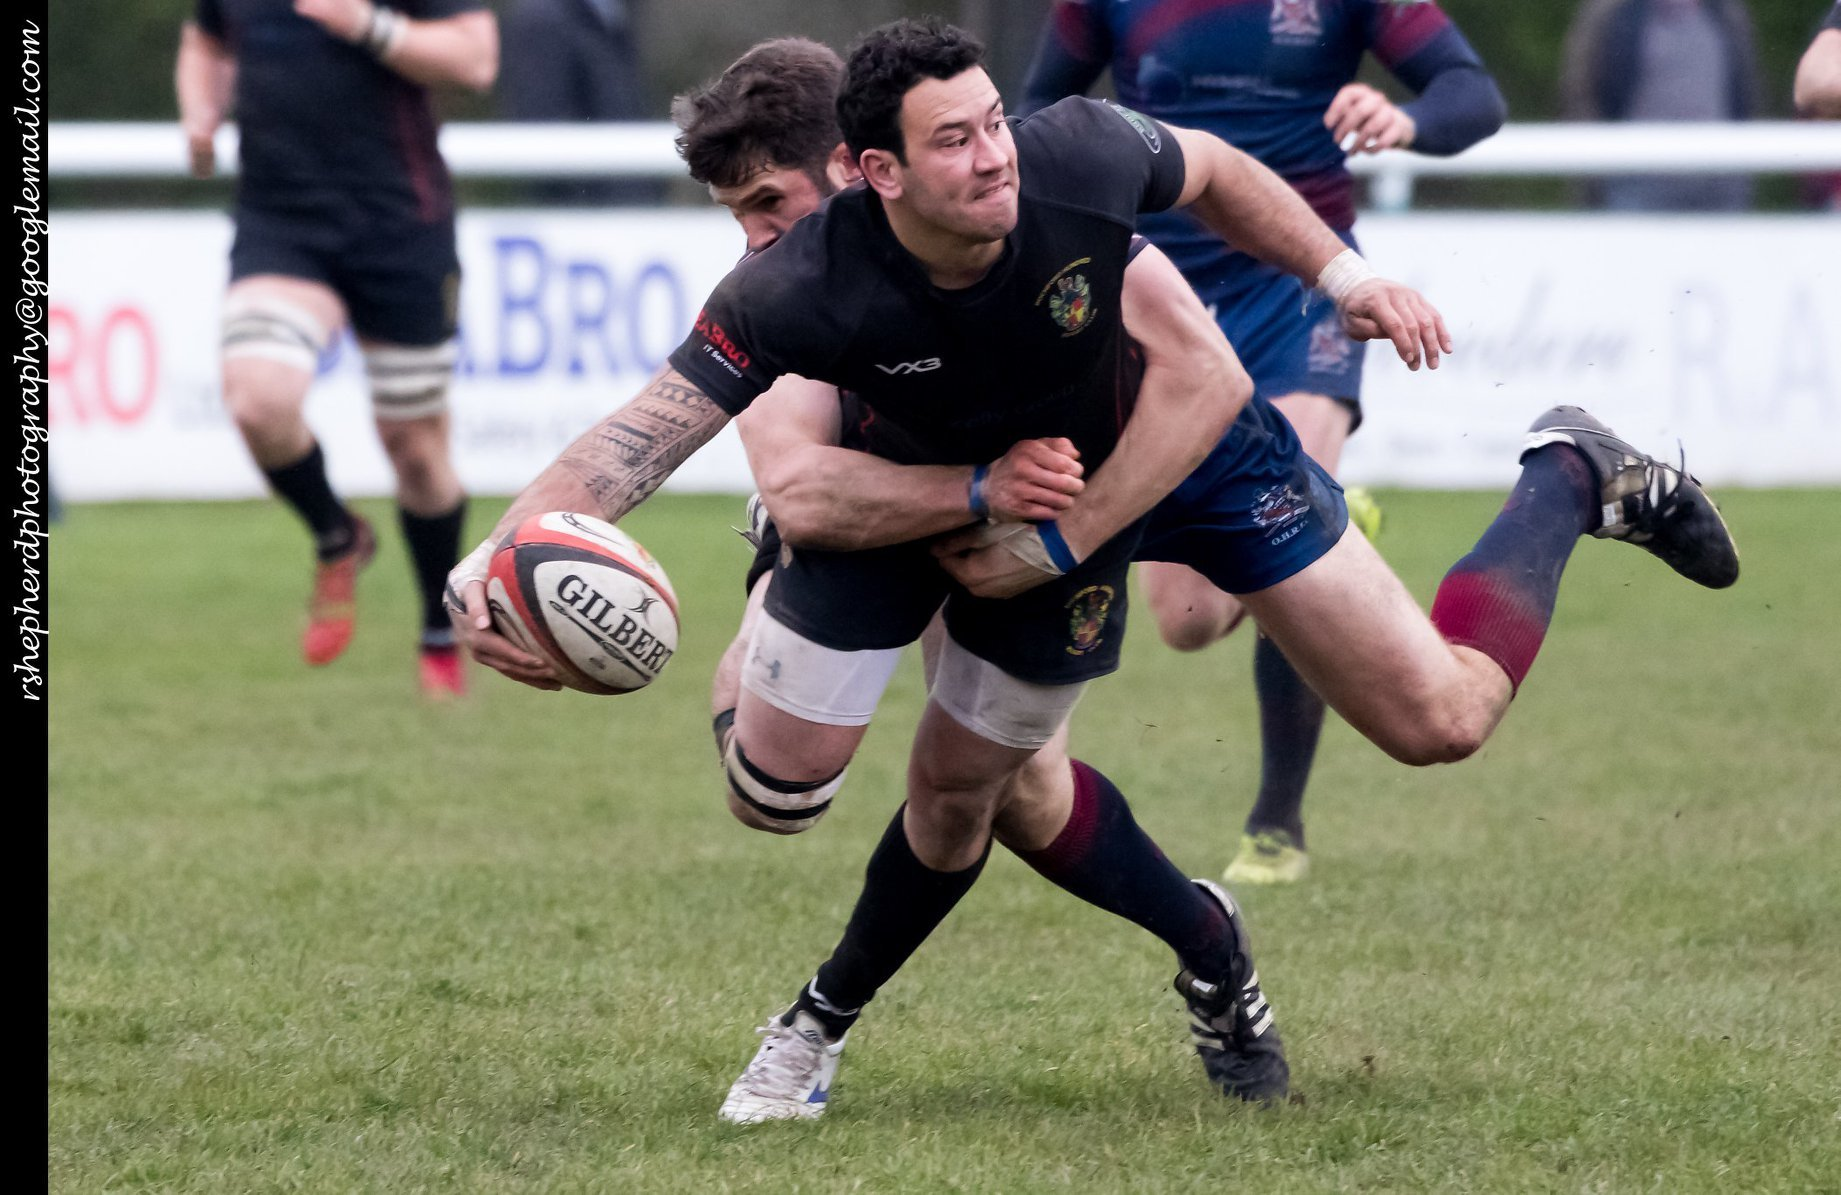 Two tries - Sonny Gay scored twice for Rochford on the final day of the season